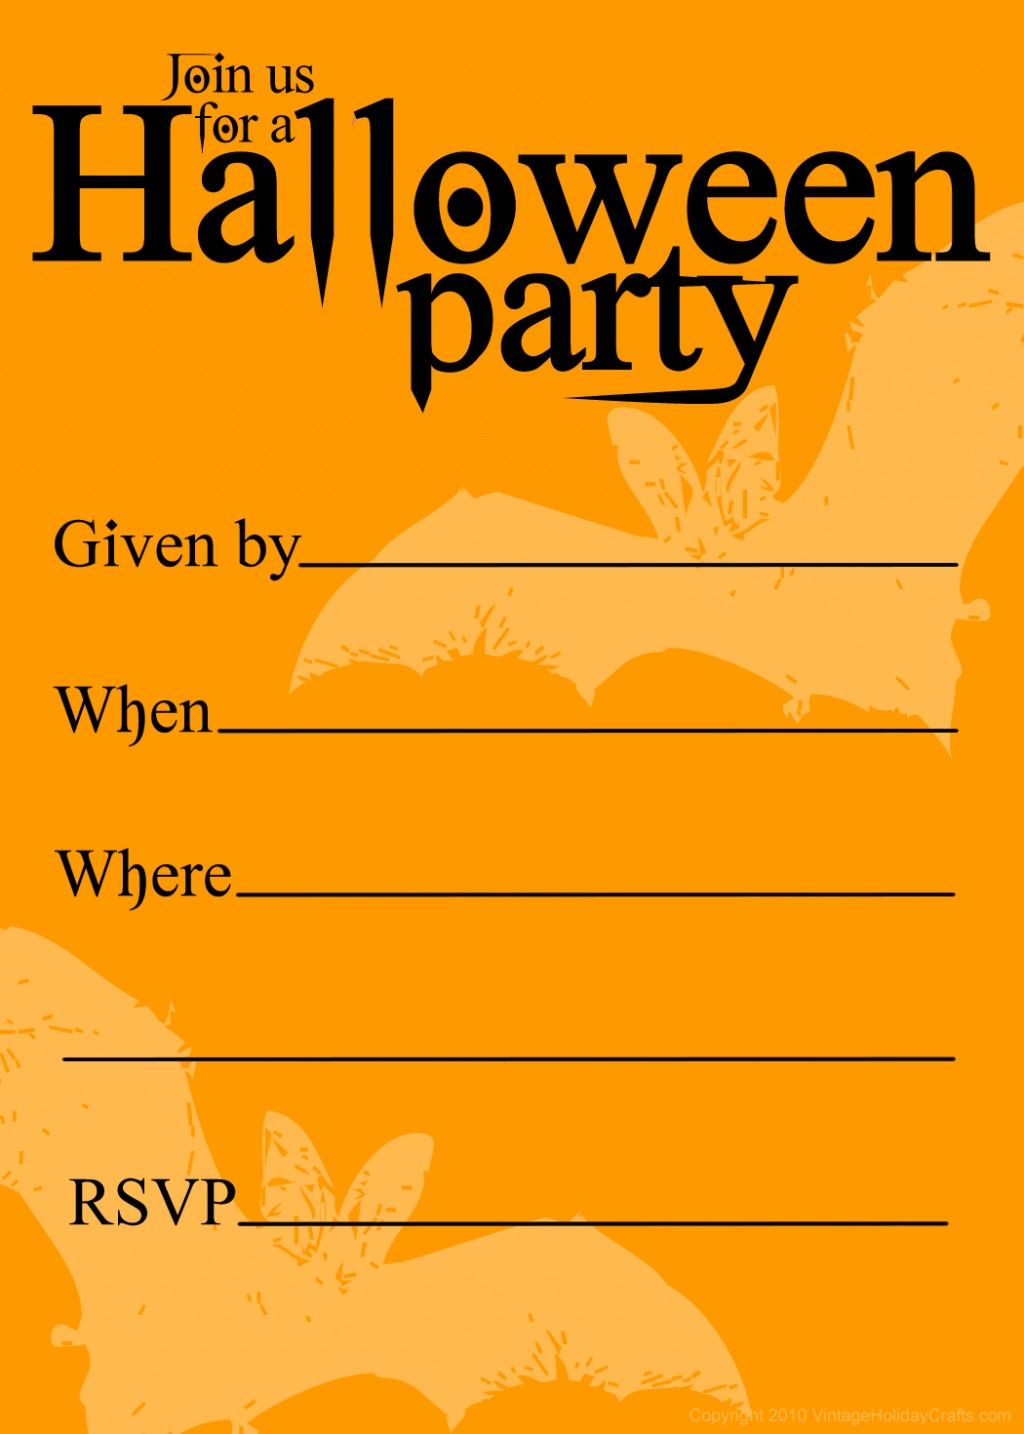 Free Printable Halloween Birthday Invitations Templates | halloween ...